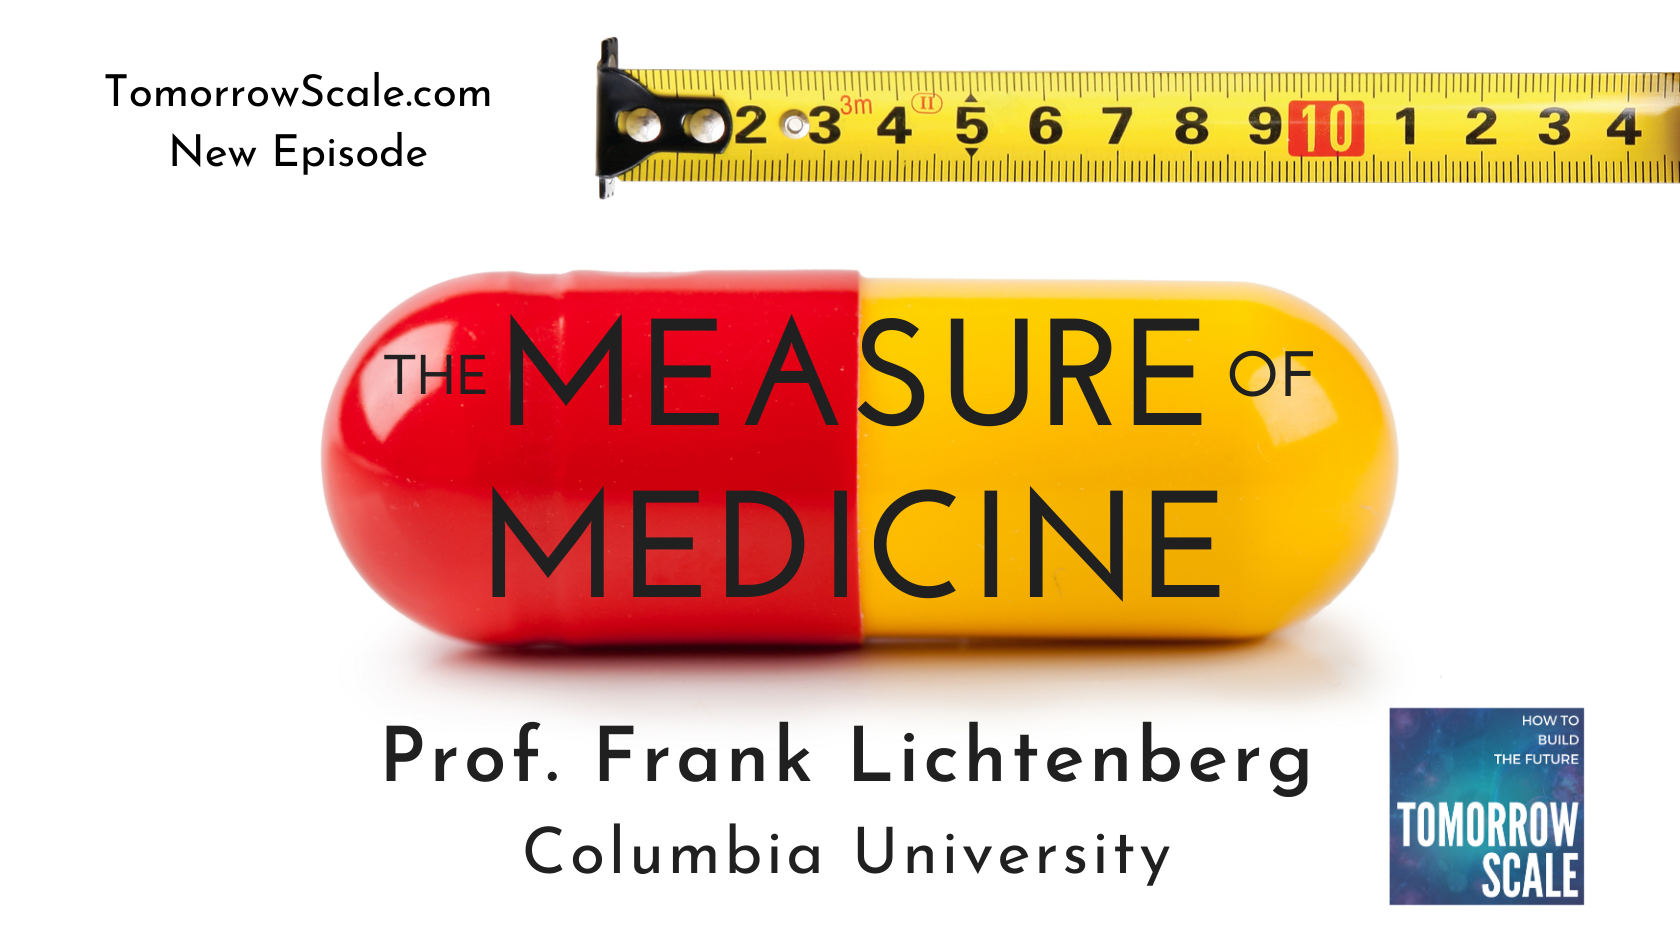 The Measure of Medicine - Prof Frank Lichtenberg